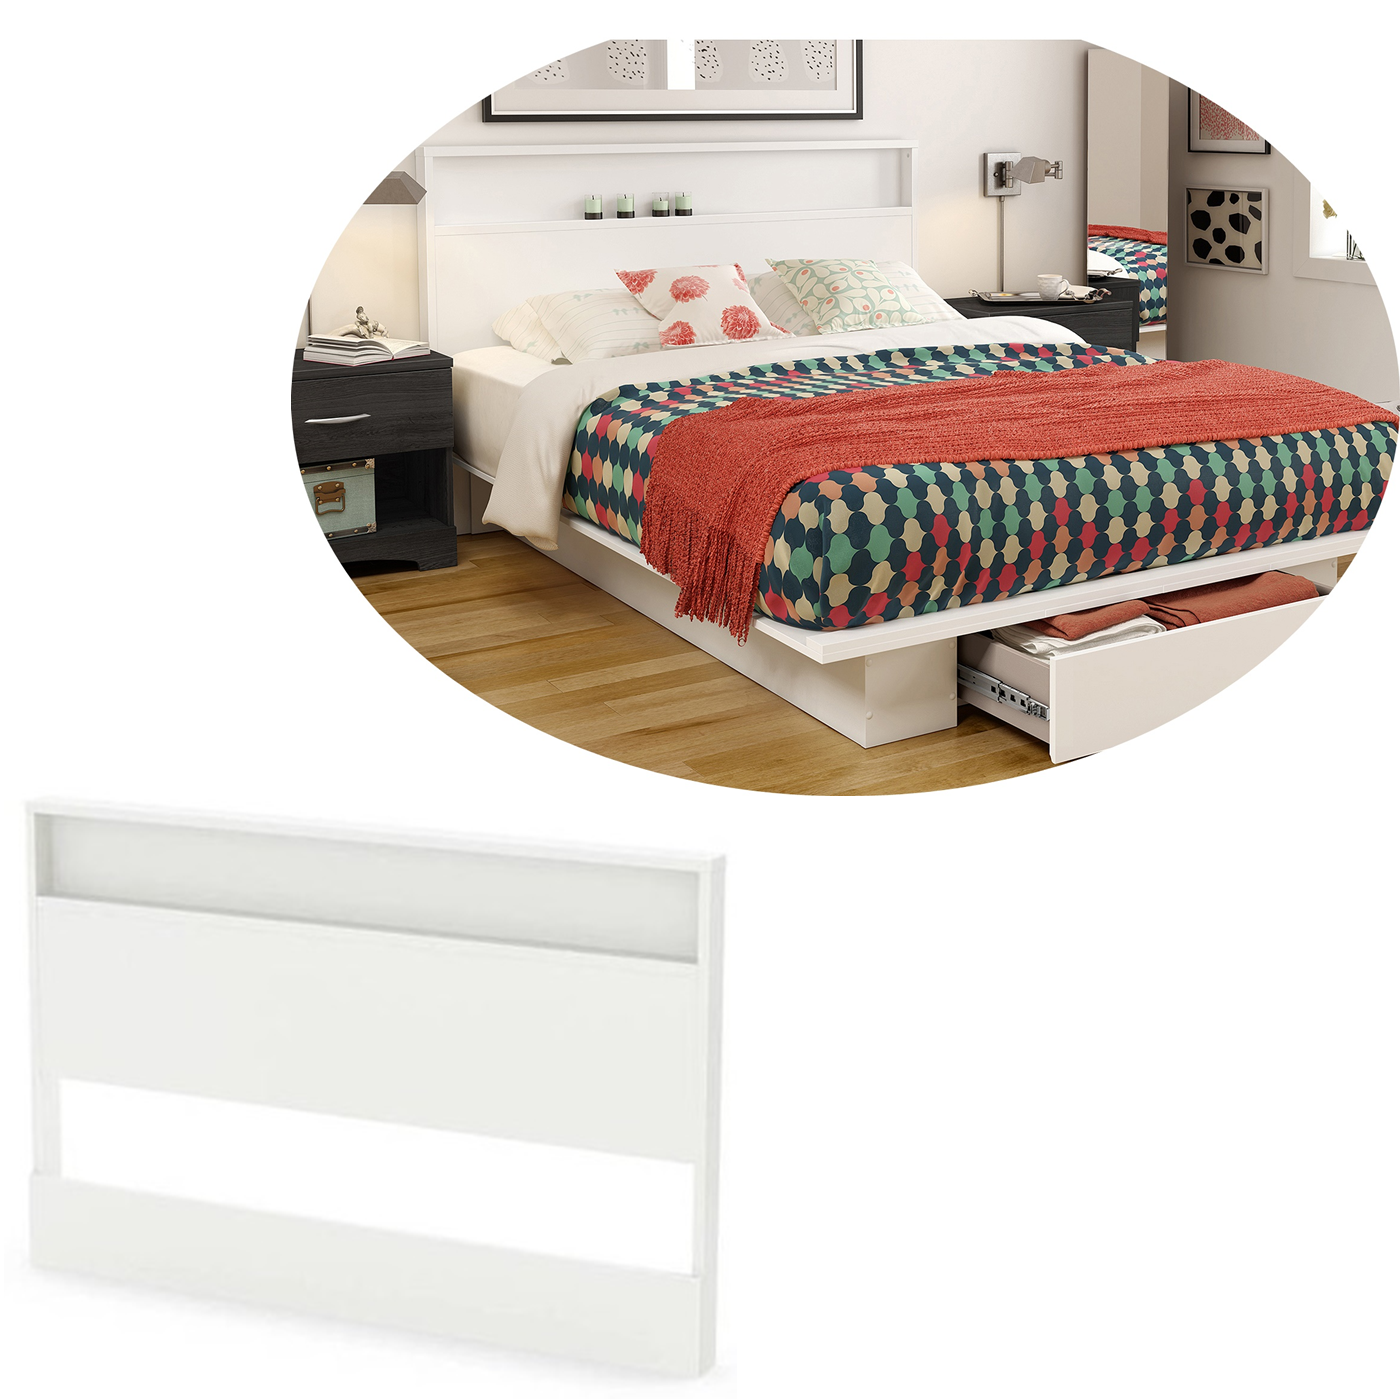 Modern Wood Headboard With Shelf Queen Full Size Bed Frame White South Shore